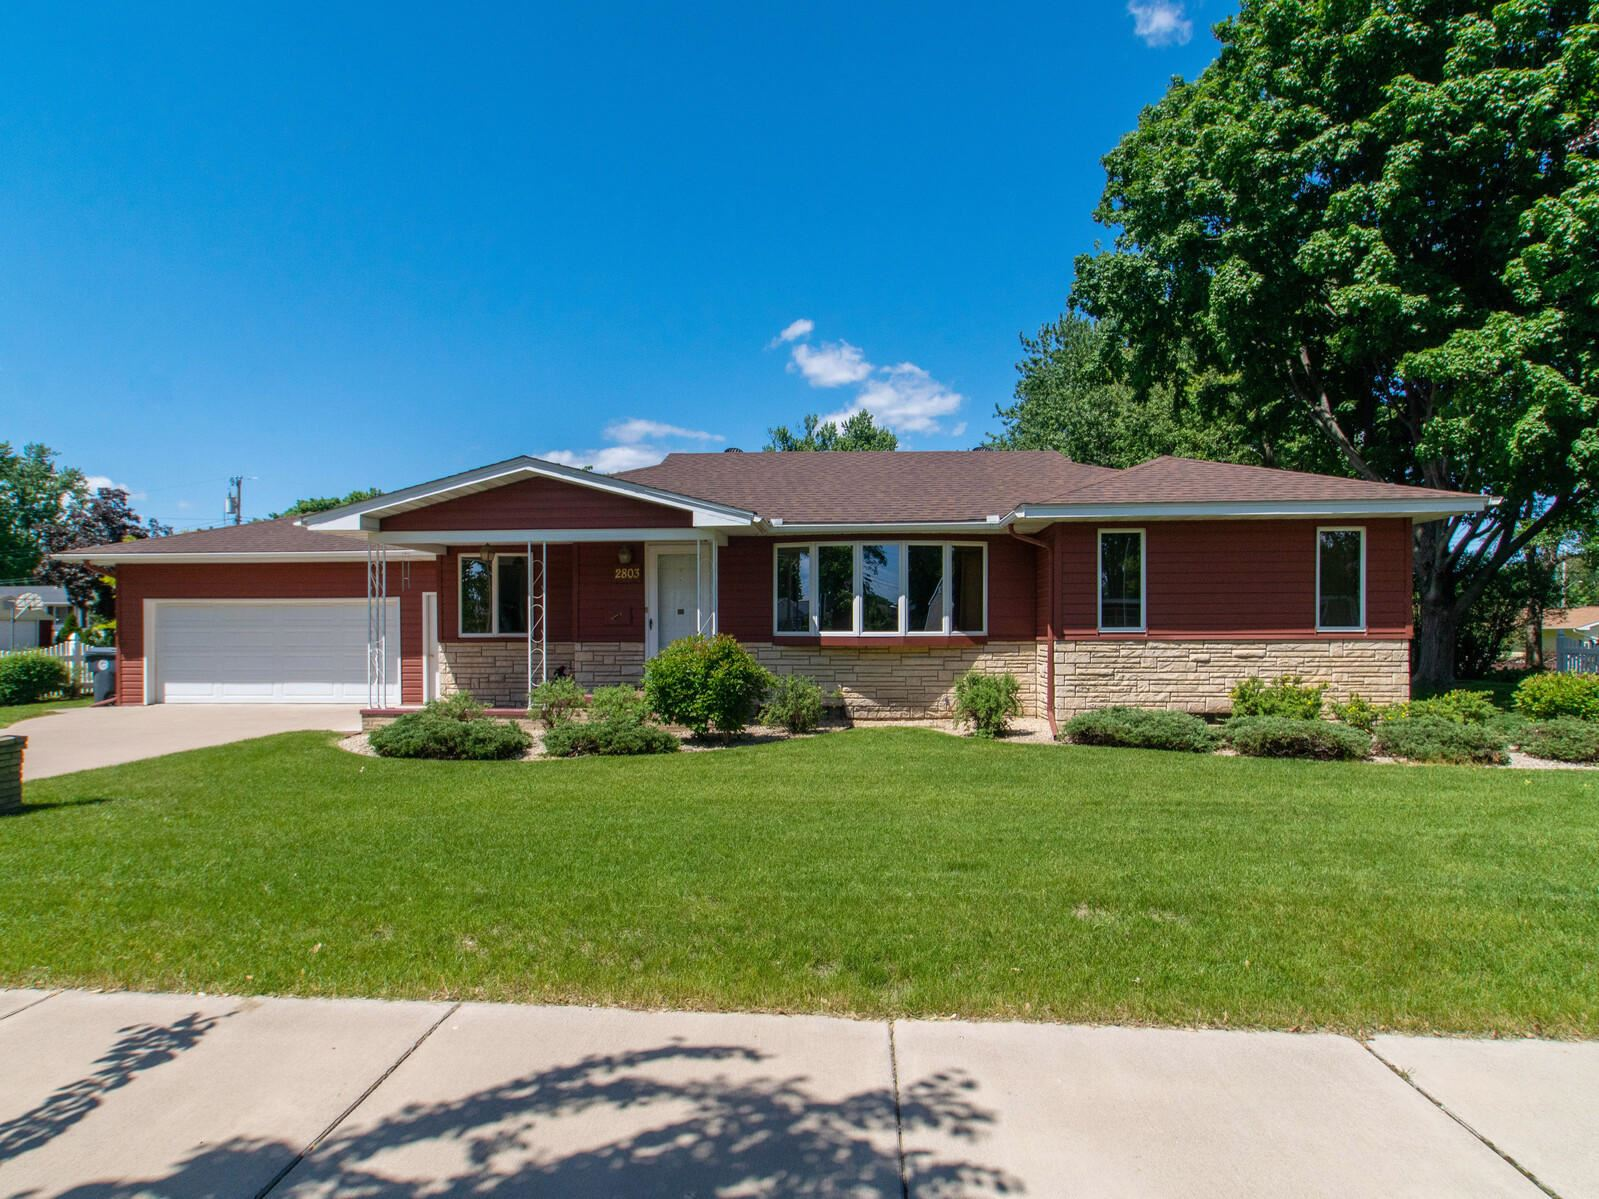 2803 BIRCH ST, La Crosse, WI 54601 - MLS#: 1691731